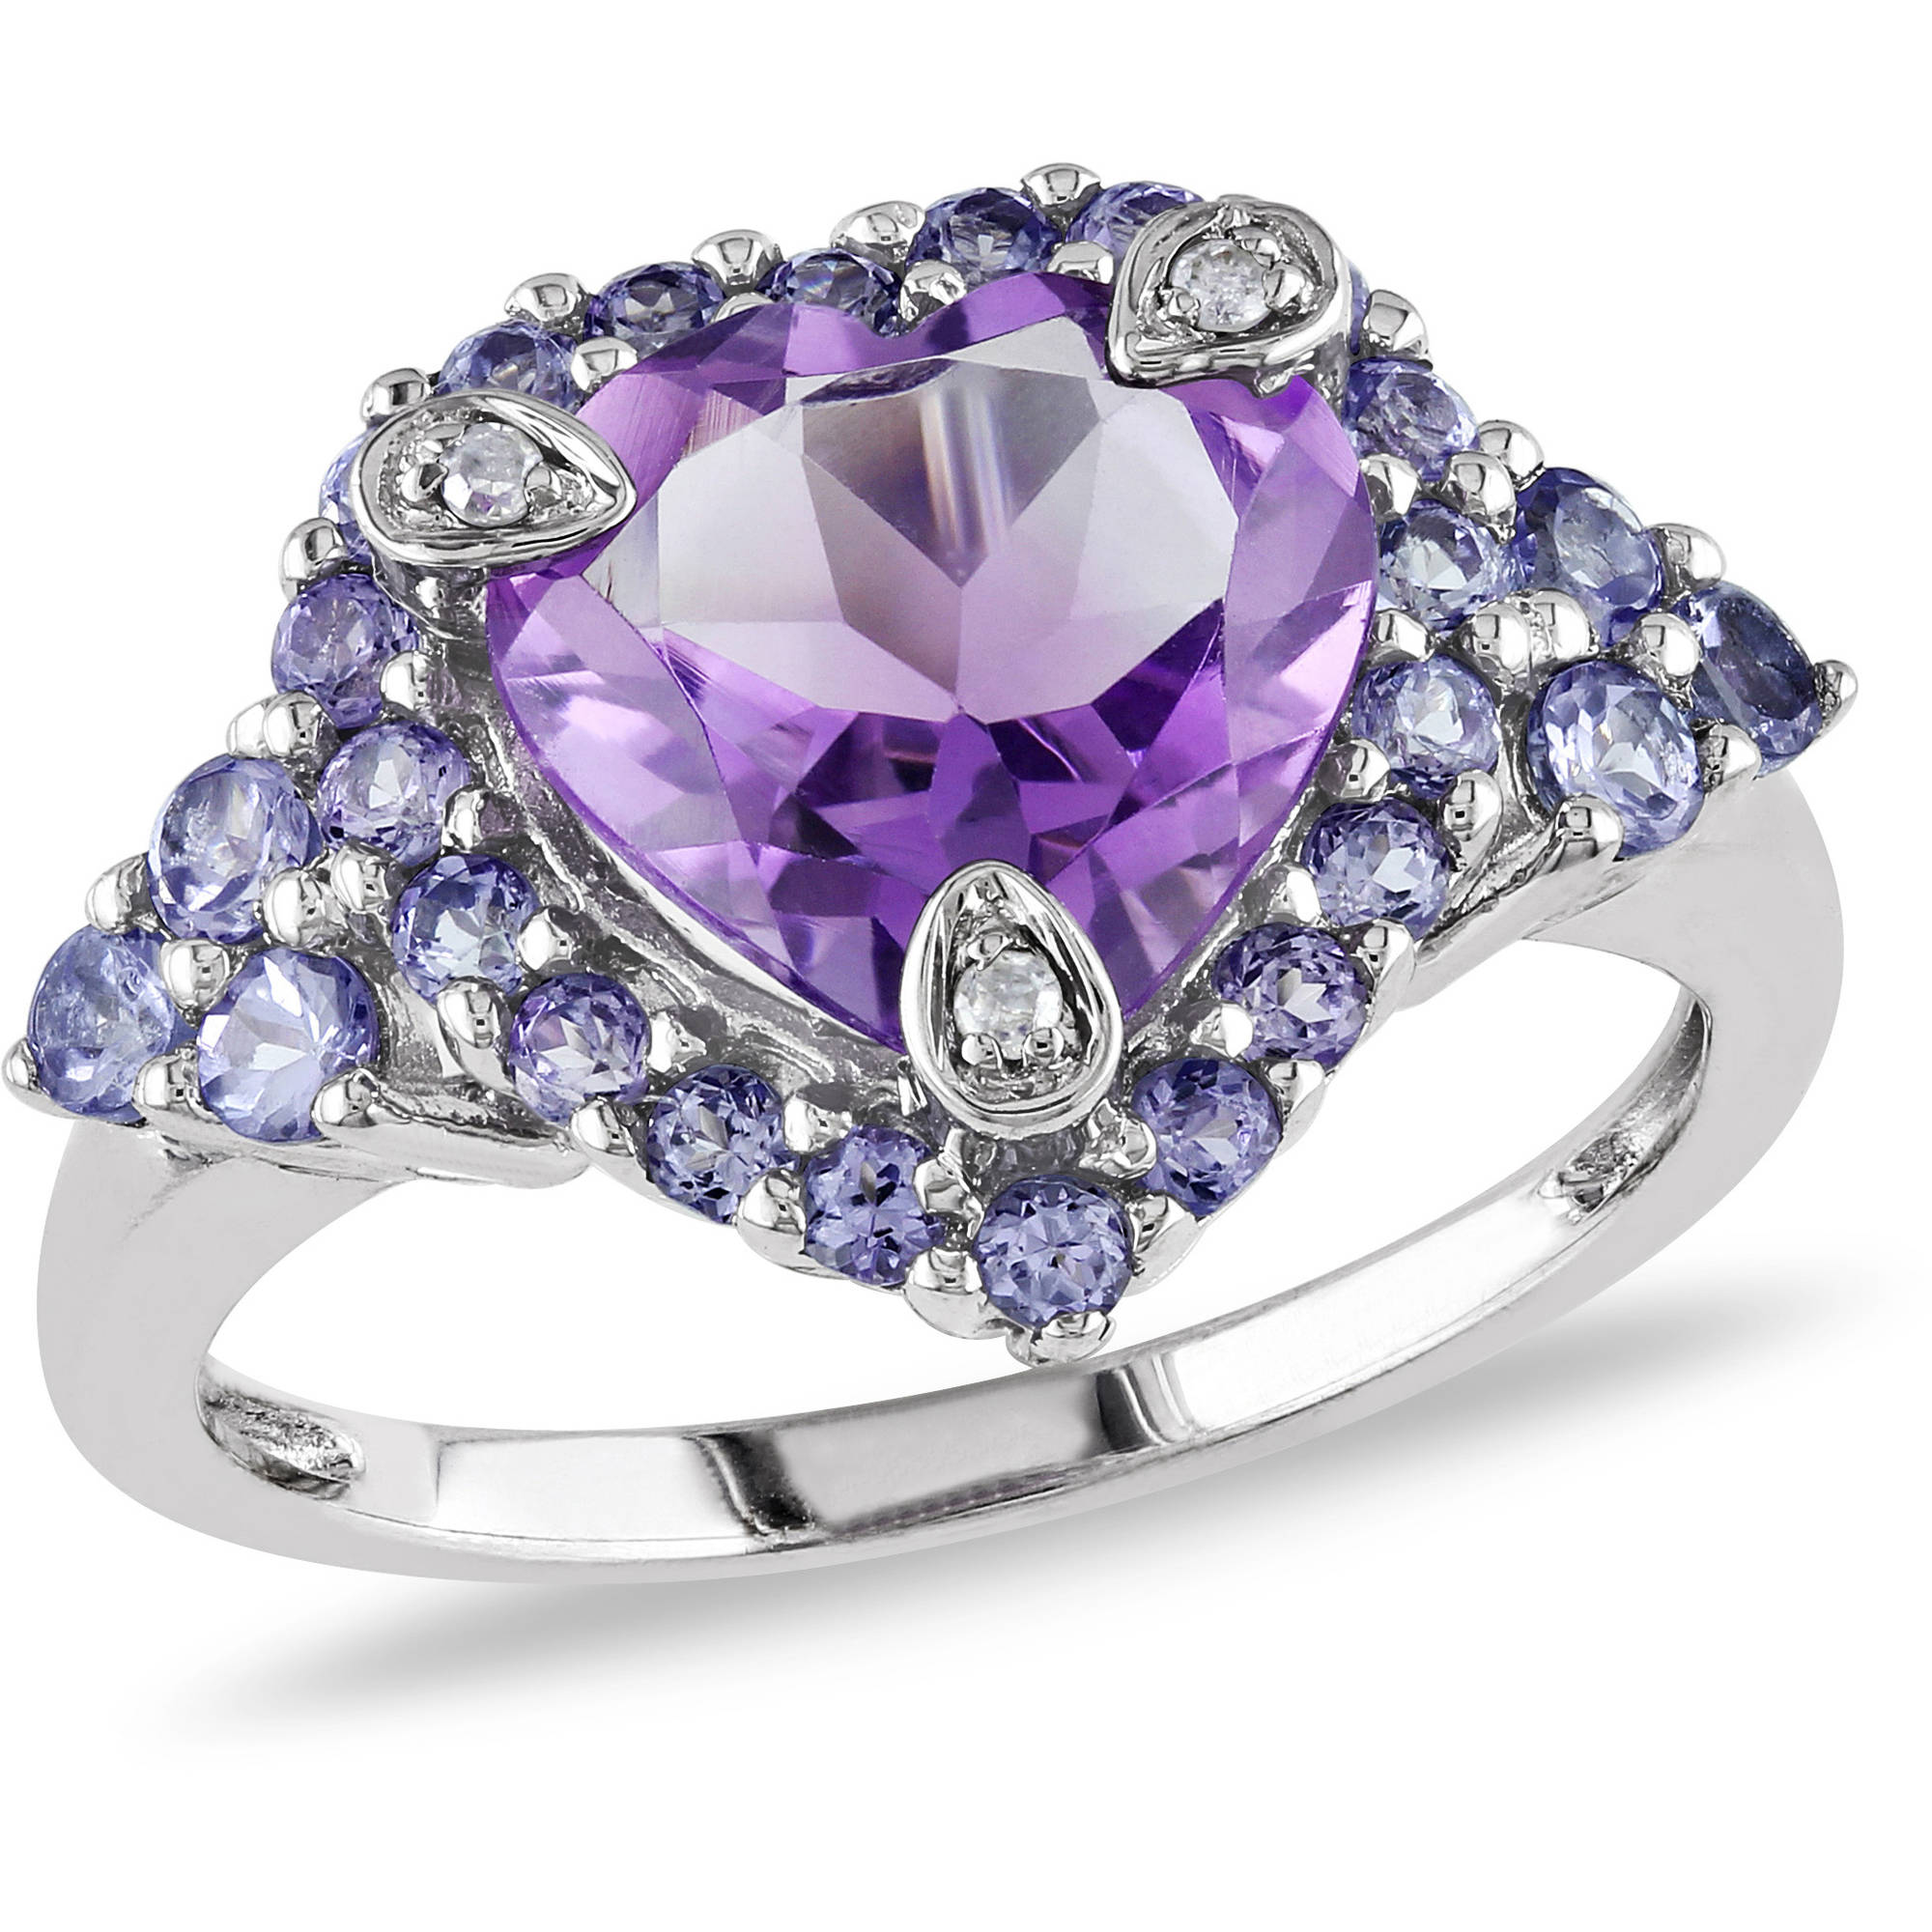 3 Carat T.G.W. Amethyst, Tanzanite and Diamond-Accent 10kt White Gold Heart Ring